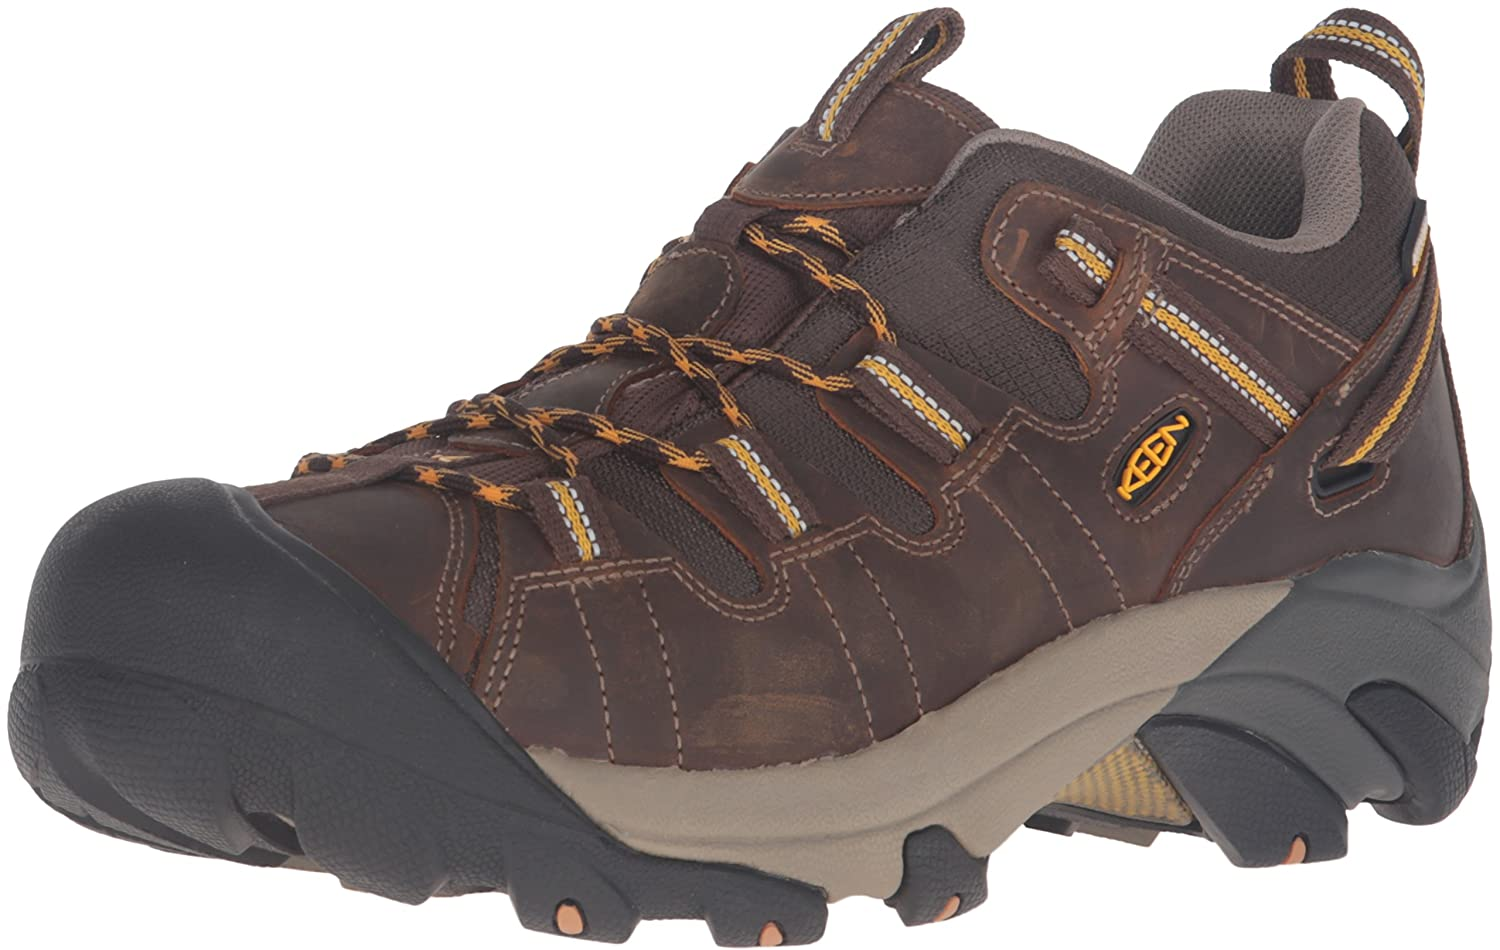 47ff90b9ead Keen Men's Targhee II WP Mid Wide Hiking Boot